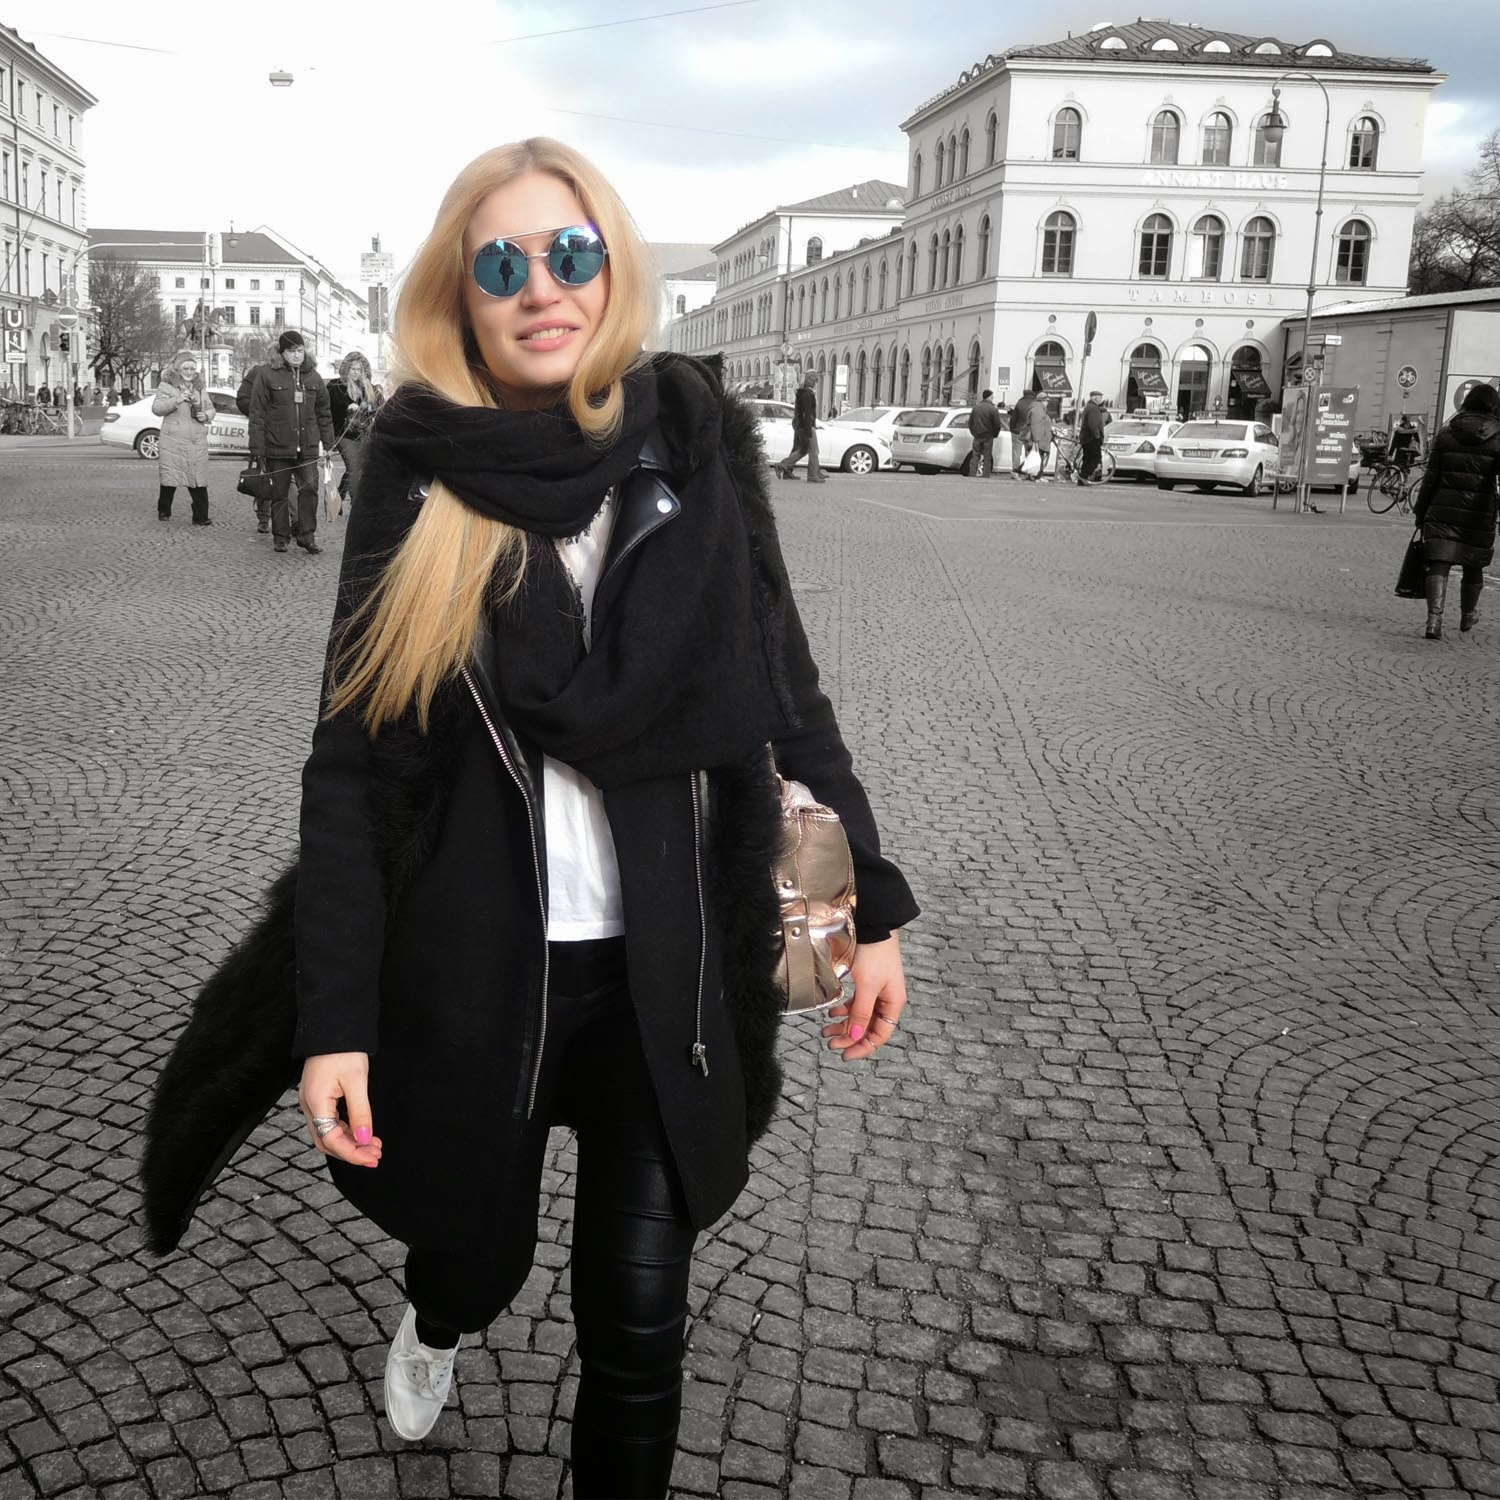 Fashionl-Blogger-Model-Shooting-Fashioblog-Modeblog-Modeprinzesschen-Munich-München-Random-Travel Tipps-Fashion Blog-Mode Blog-Fashion-Reisen-ootd-Outfit